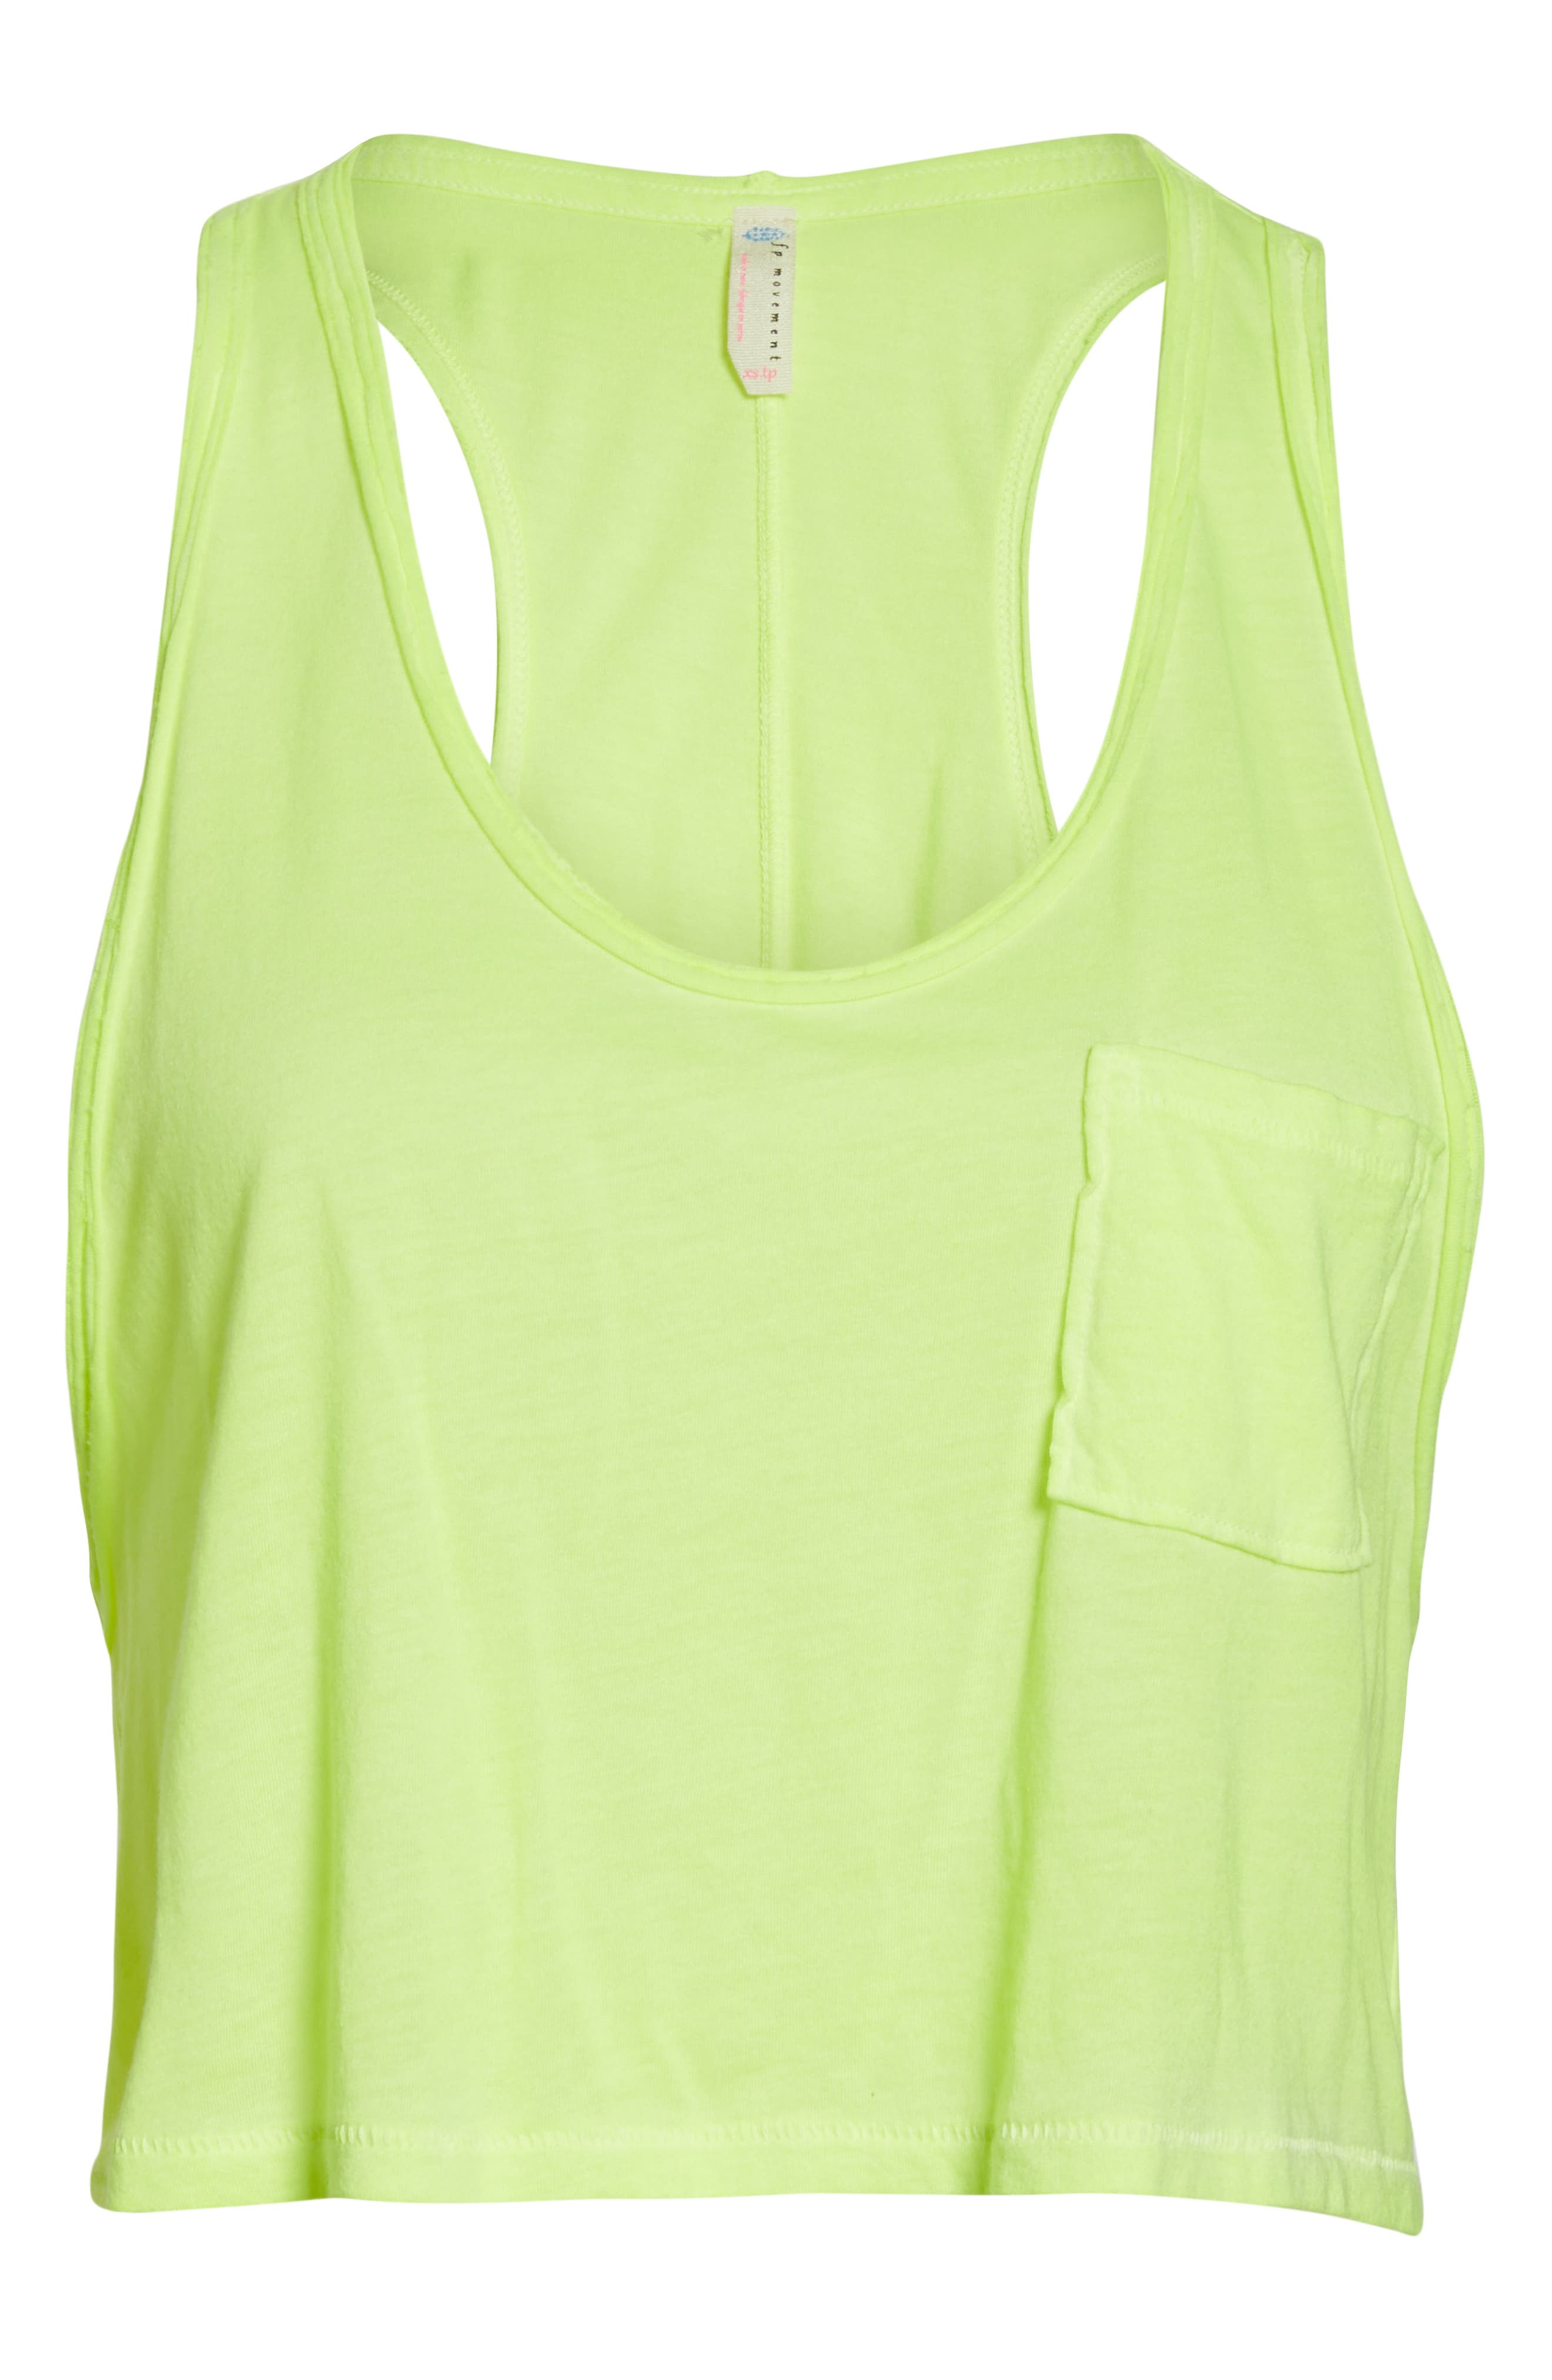 FREE PEOPLE MOVEMENT,                             Sunny Days Cropped Tank Top,                             Alternate thumbnail 7, color,                             LIME